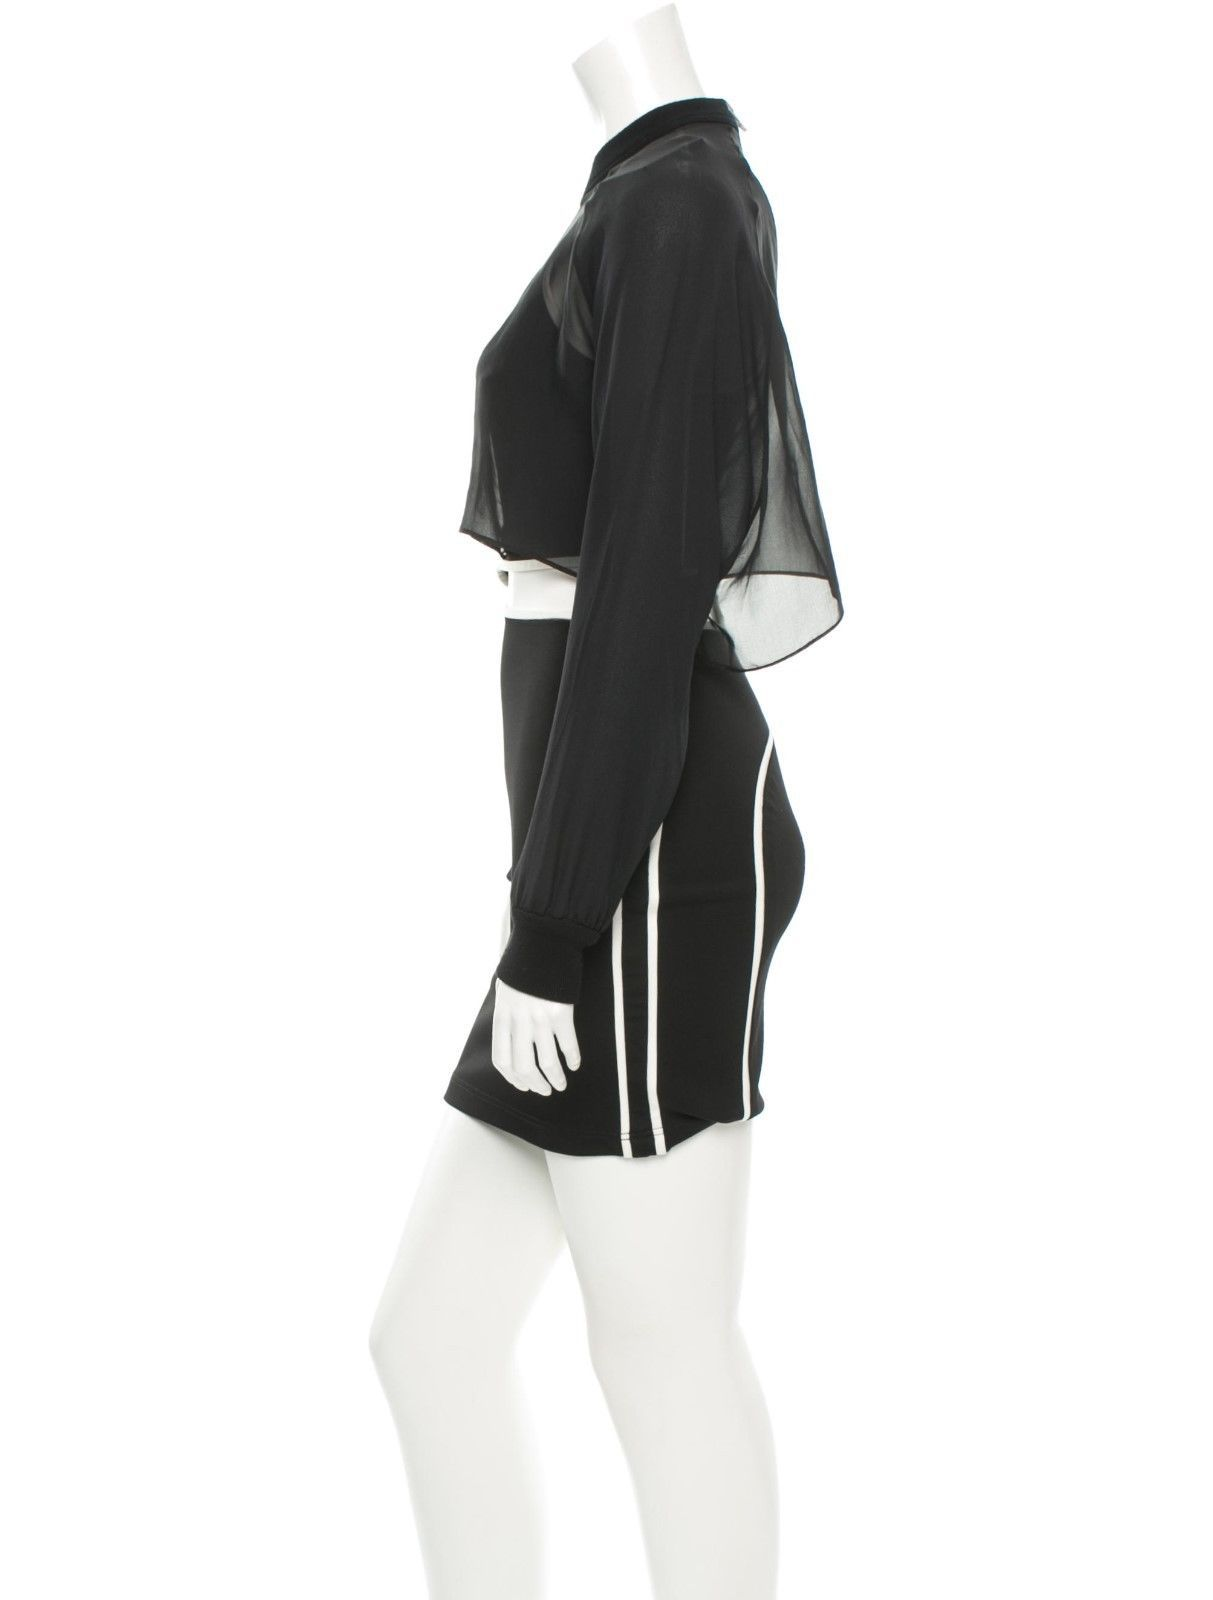 CRAZY COOL, NWT $1,782 SEXY SOLD OUT BLACK & WHITE BODYCON ALEXANDER WANG DRESS image 3